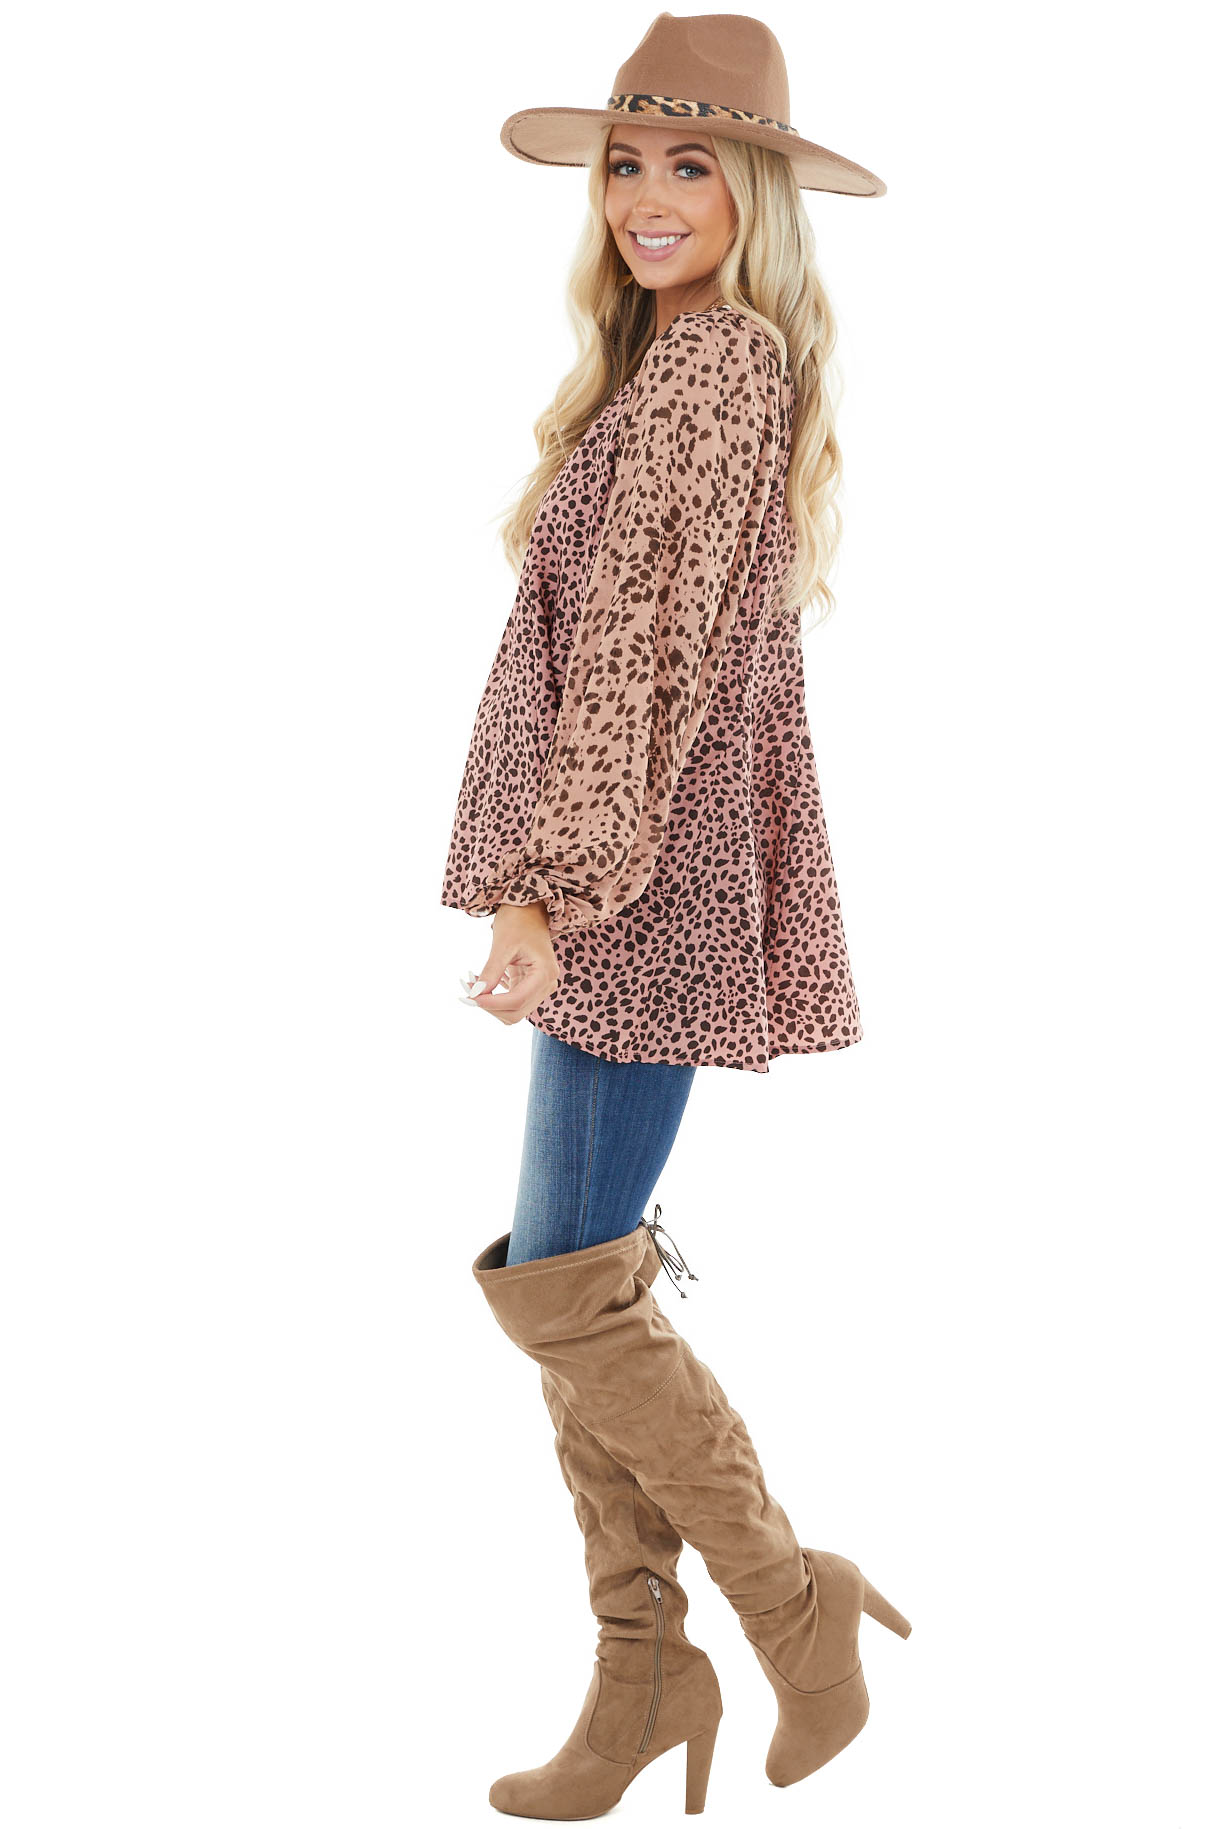 Dusty Blush Cheetah Print Flowy Top with Bubble Sleeves